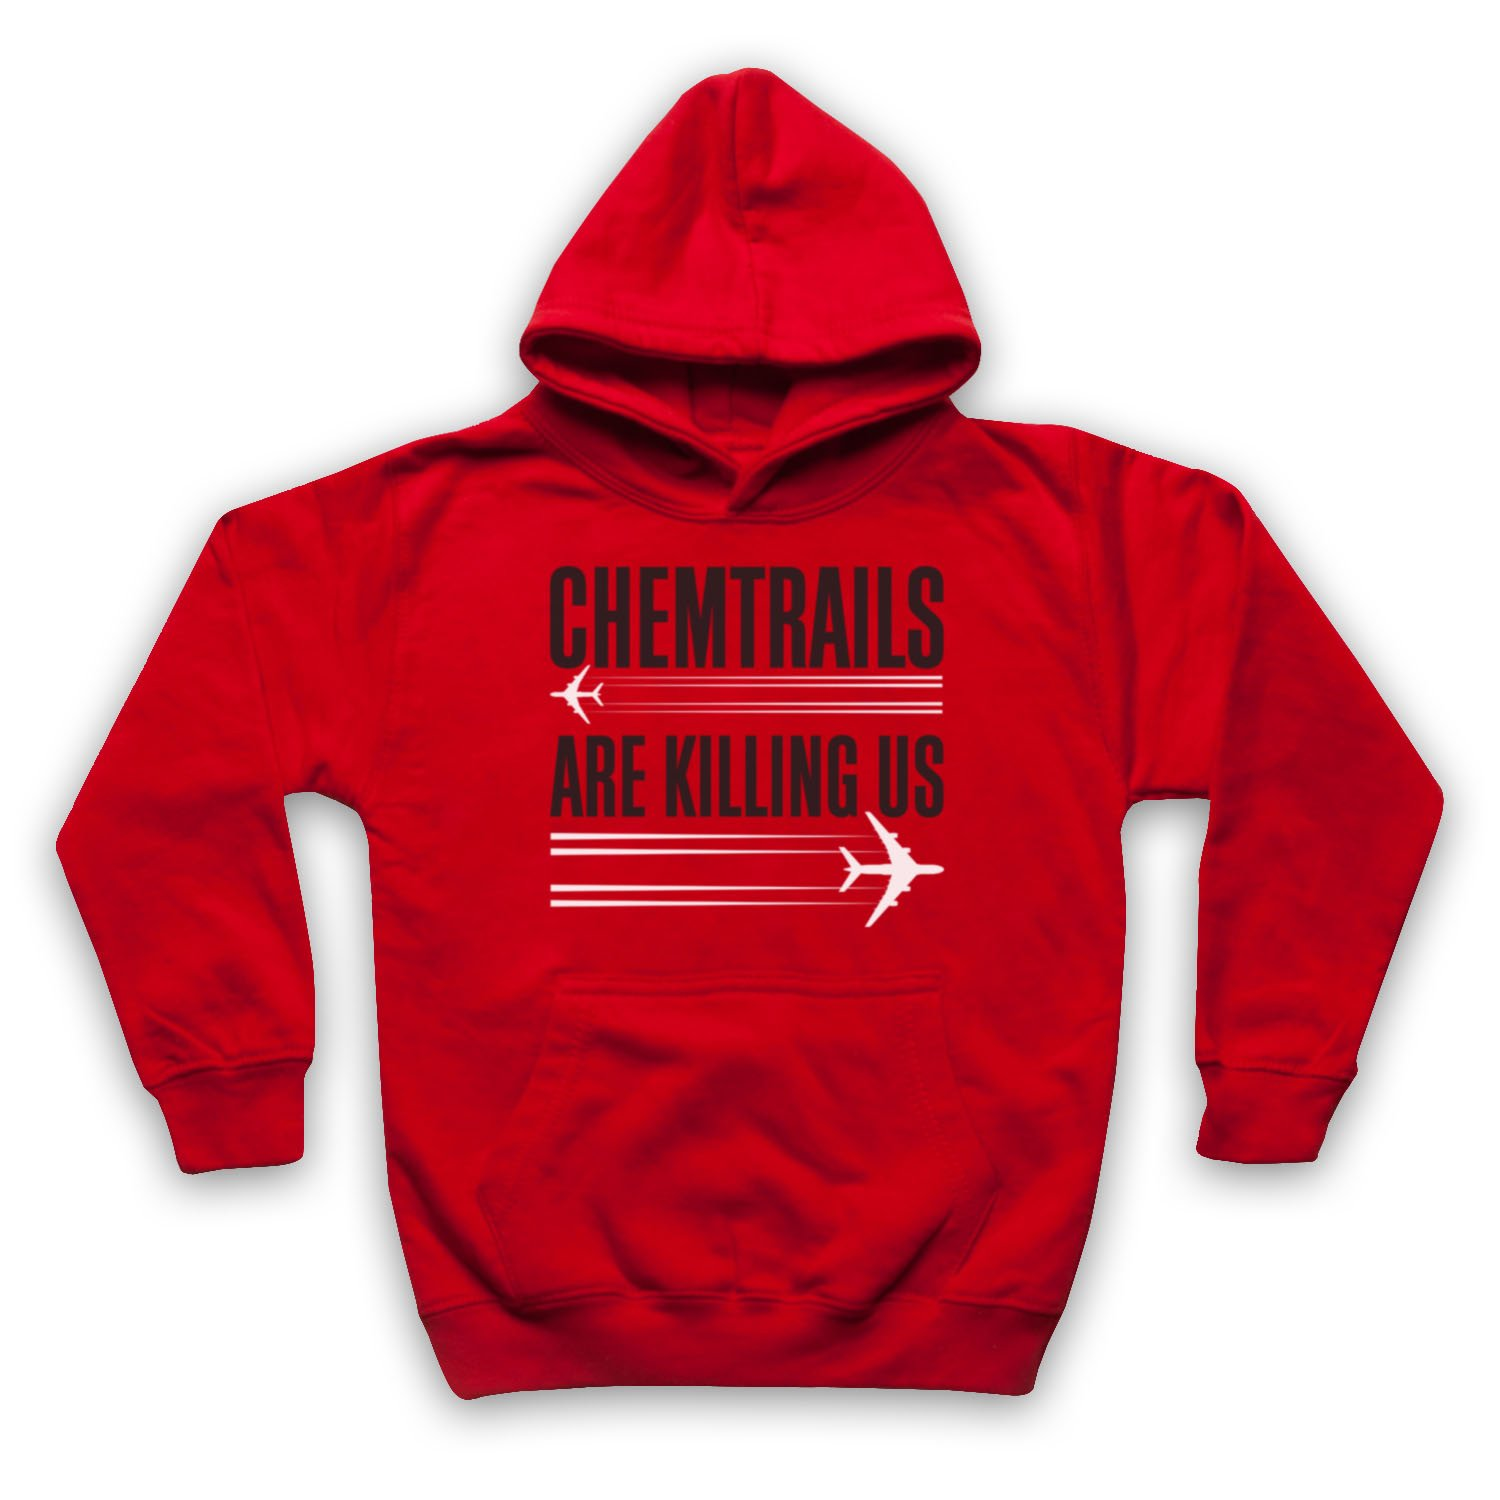 My Icon Little Boys Chemtrails are Killing Us Protest Kids Hoodie